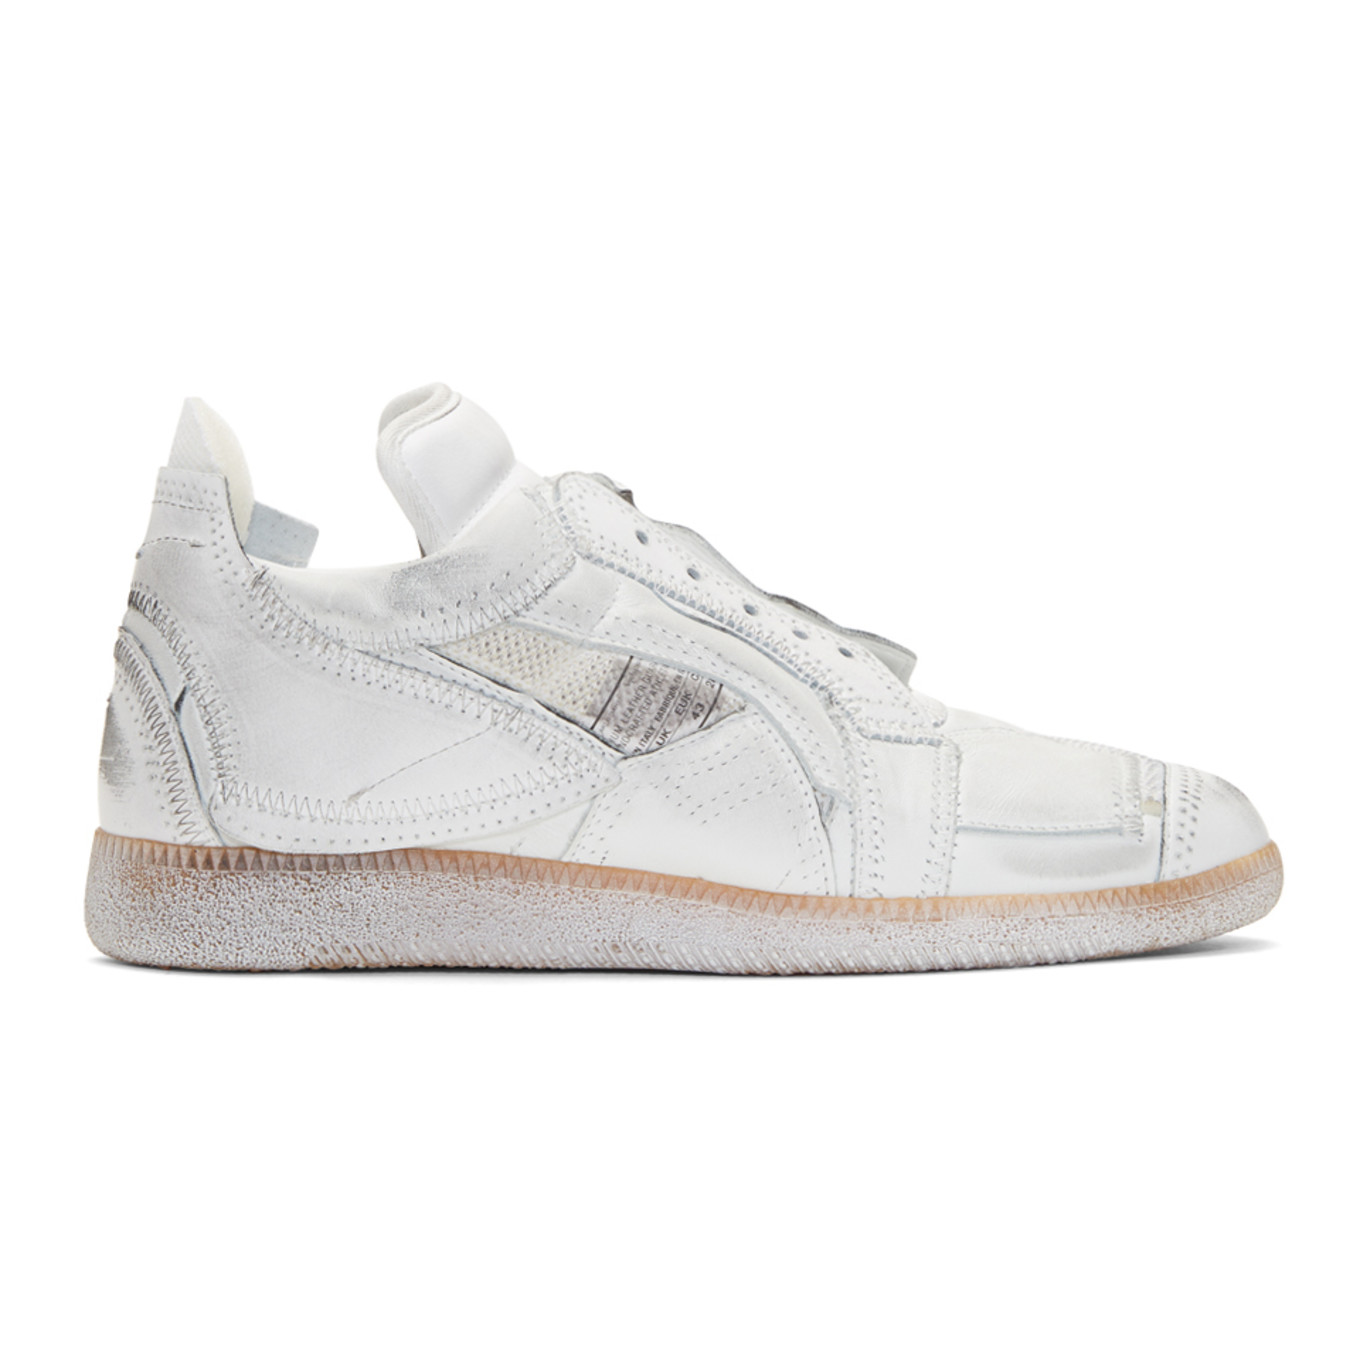 White Limited Edition Mixed Patchwork Sneakers by Maison Margiela